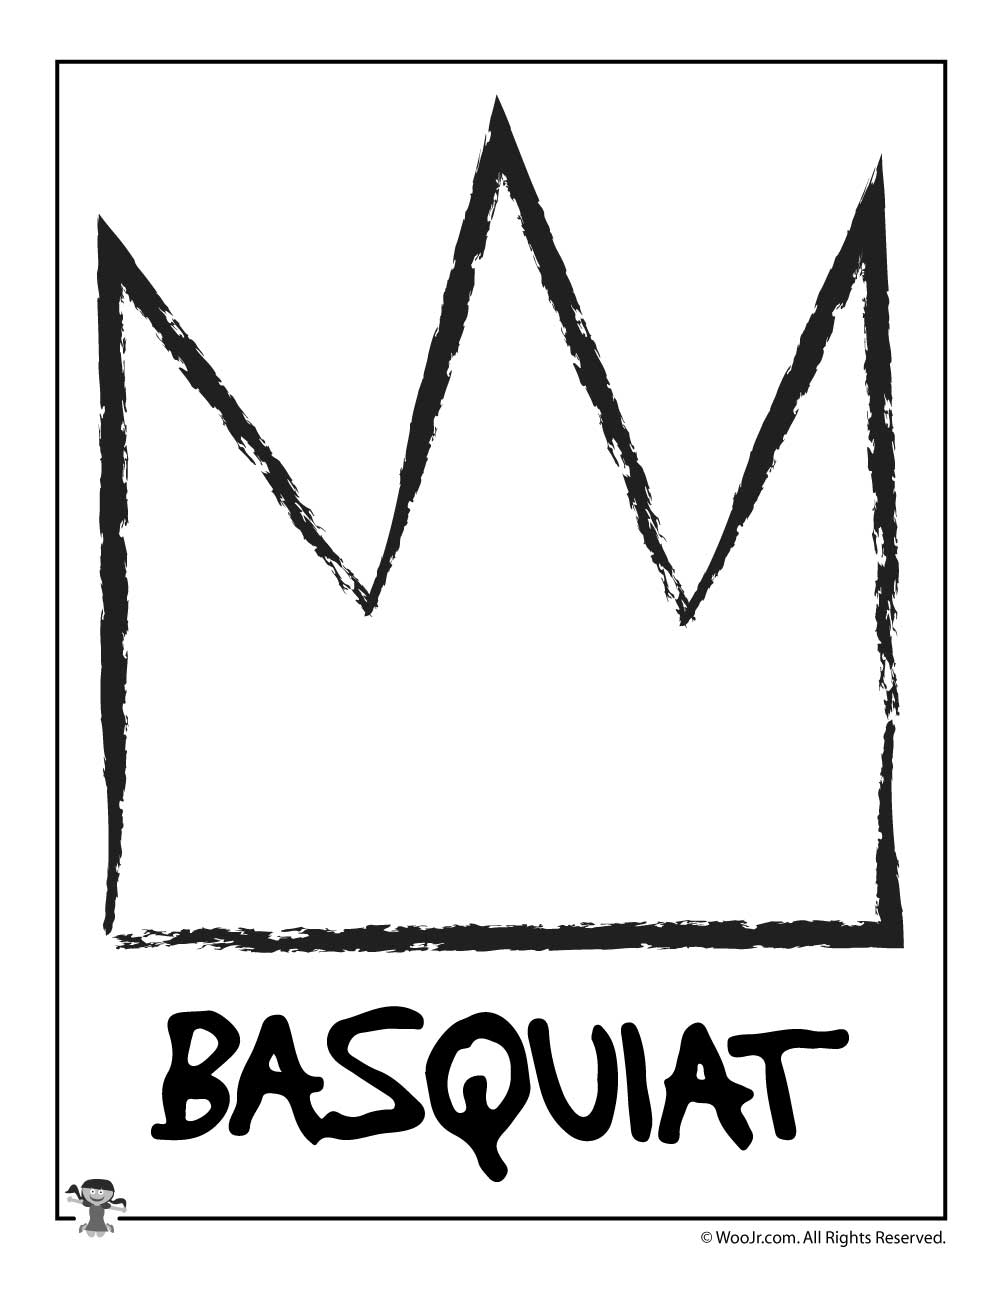 JeanMichel Basquiat Art Activity